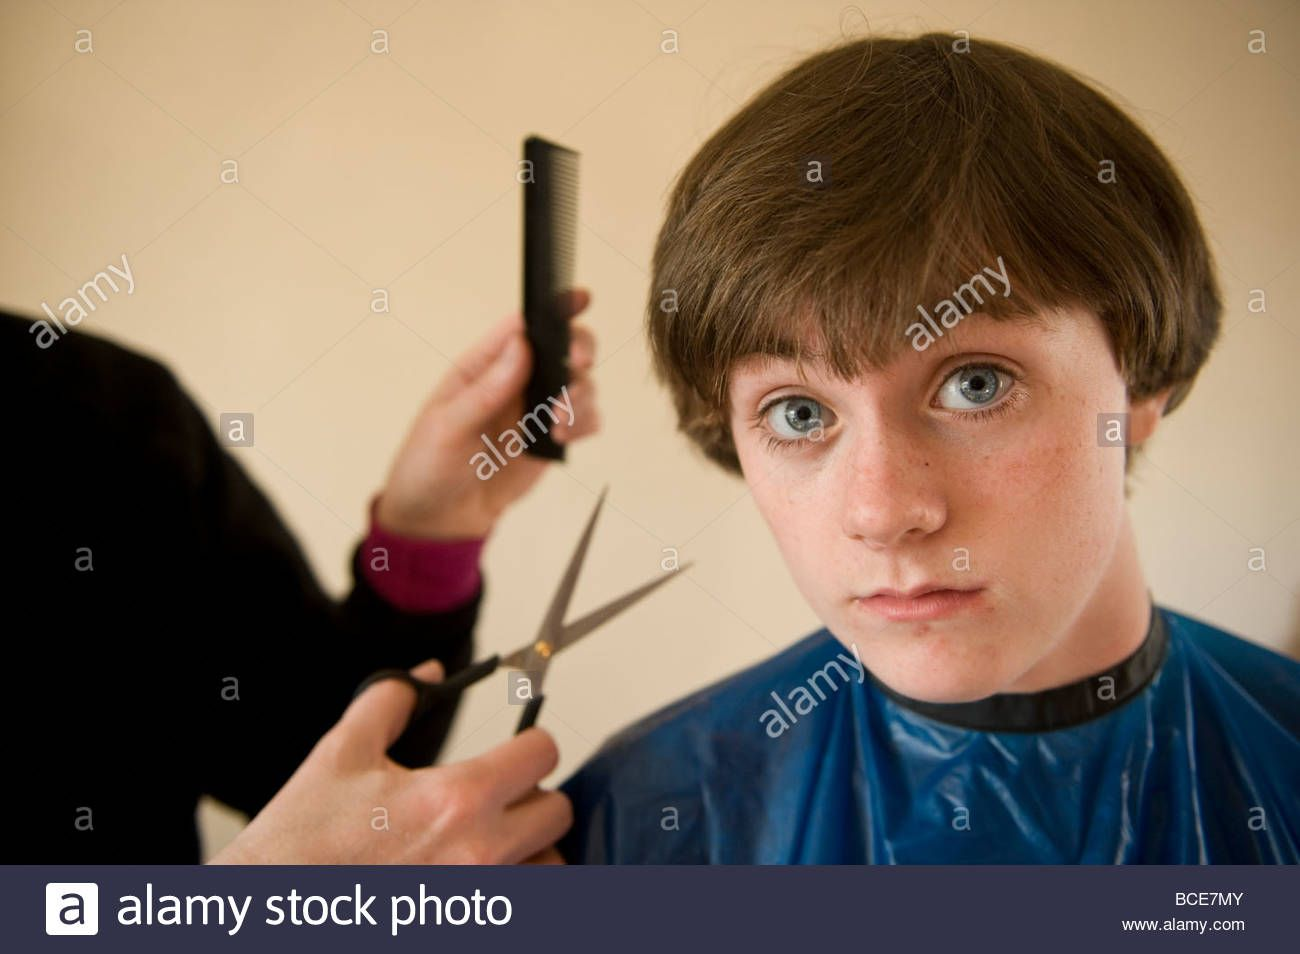 4 yr old boy haircuts related image  r  m  pinterest  searching